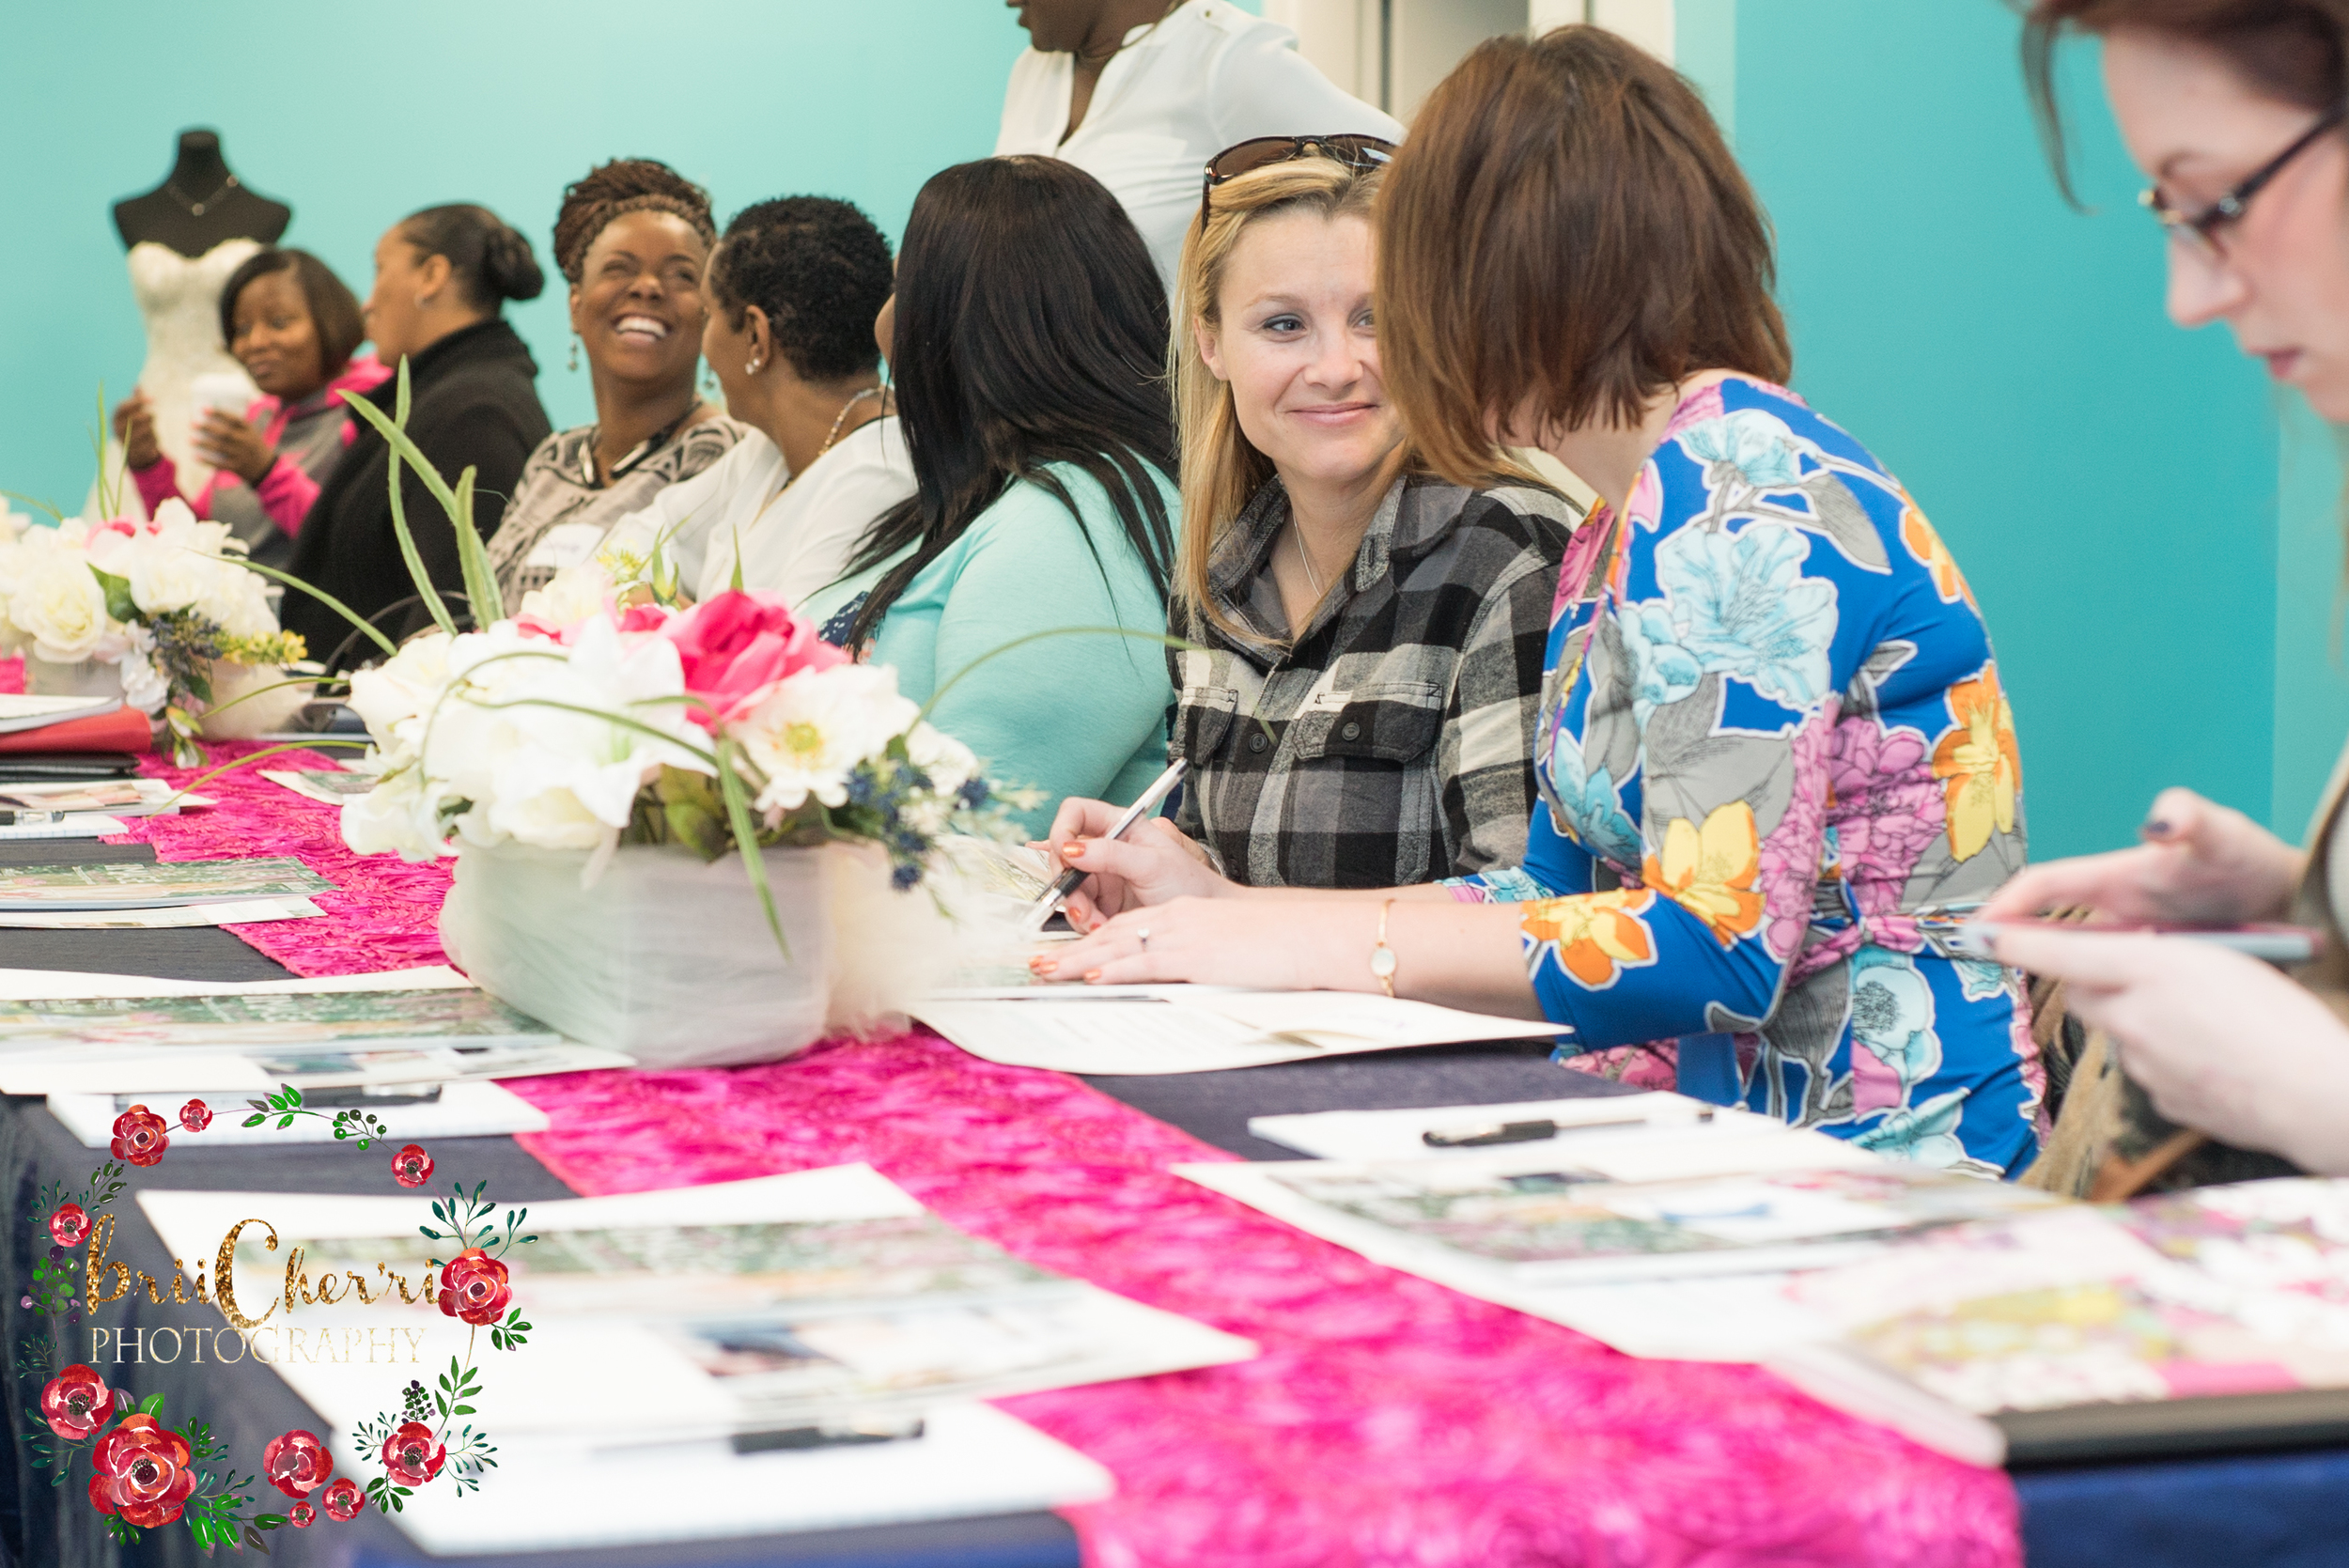 Wedtalk : Elizabeth City : Brii Cher'ri photography : Eastern NC & VA Wedding Photography & Planning : The Bridal Lounge hosts the first ever WedTalk at the Museum of the Albemarle in Elizabeth City North Carolina